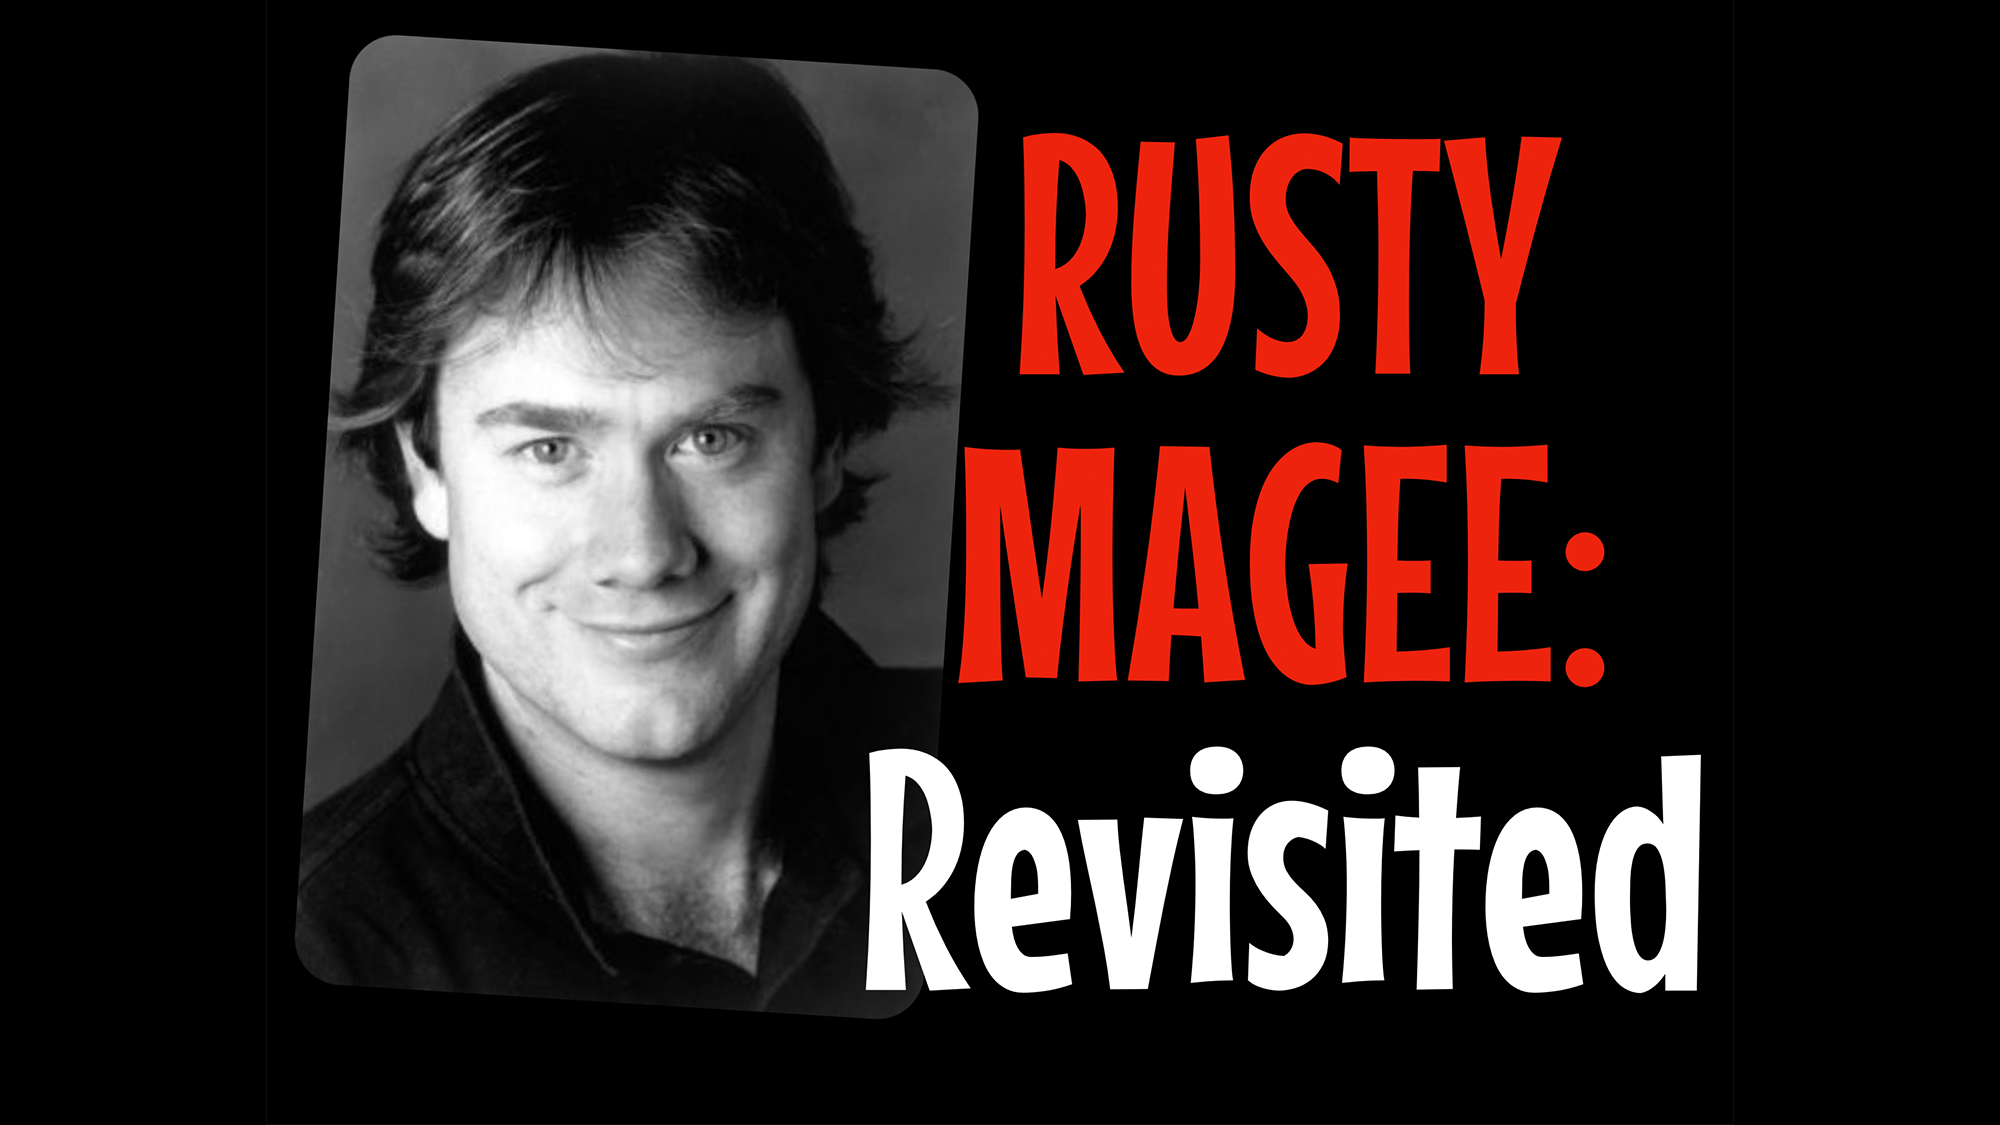 Rusty Magee: Revisited